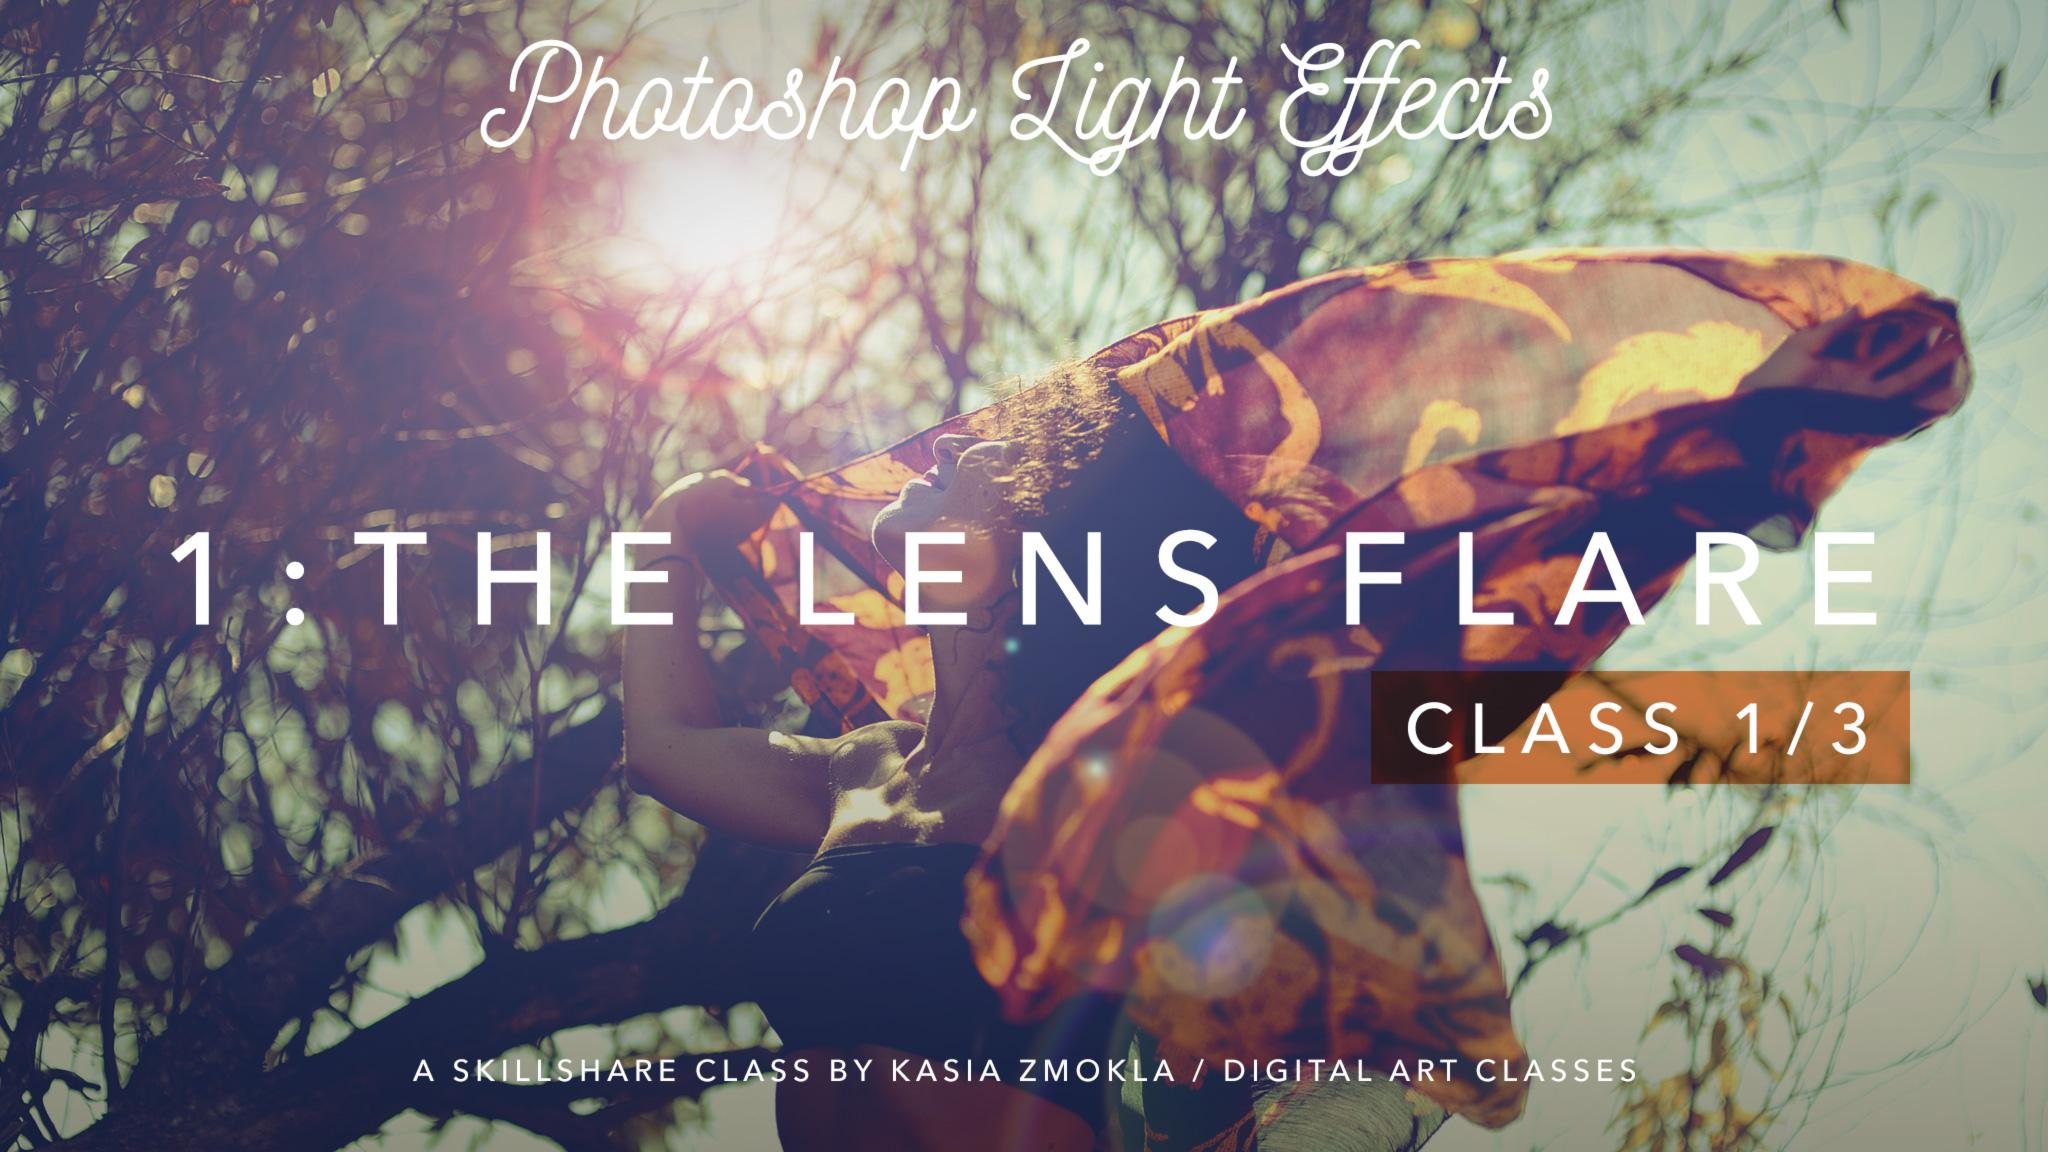 1/3 Photoshop Light Effects - The Lens Flare -Skillshare Free Course With Discount Code